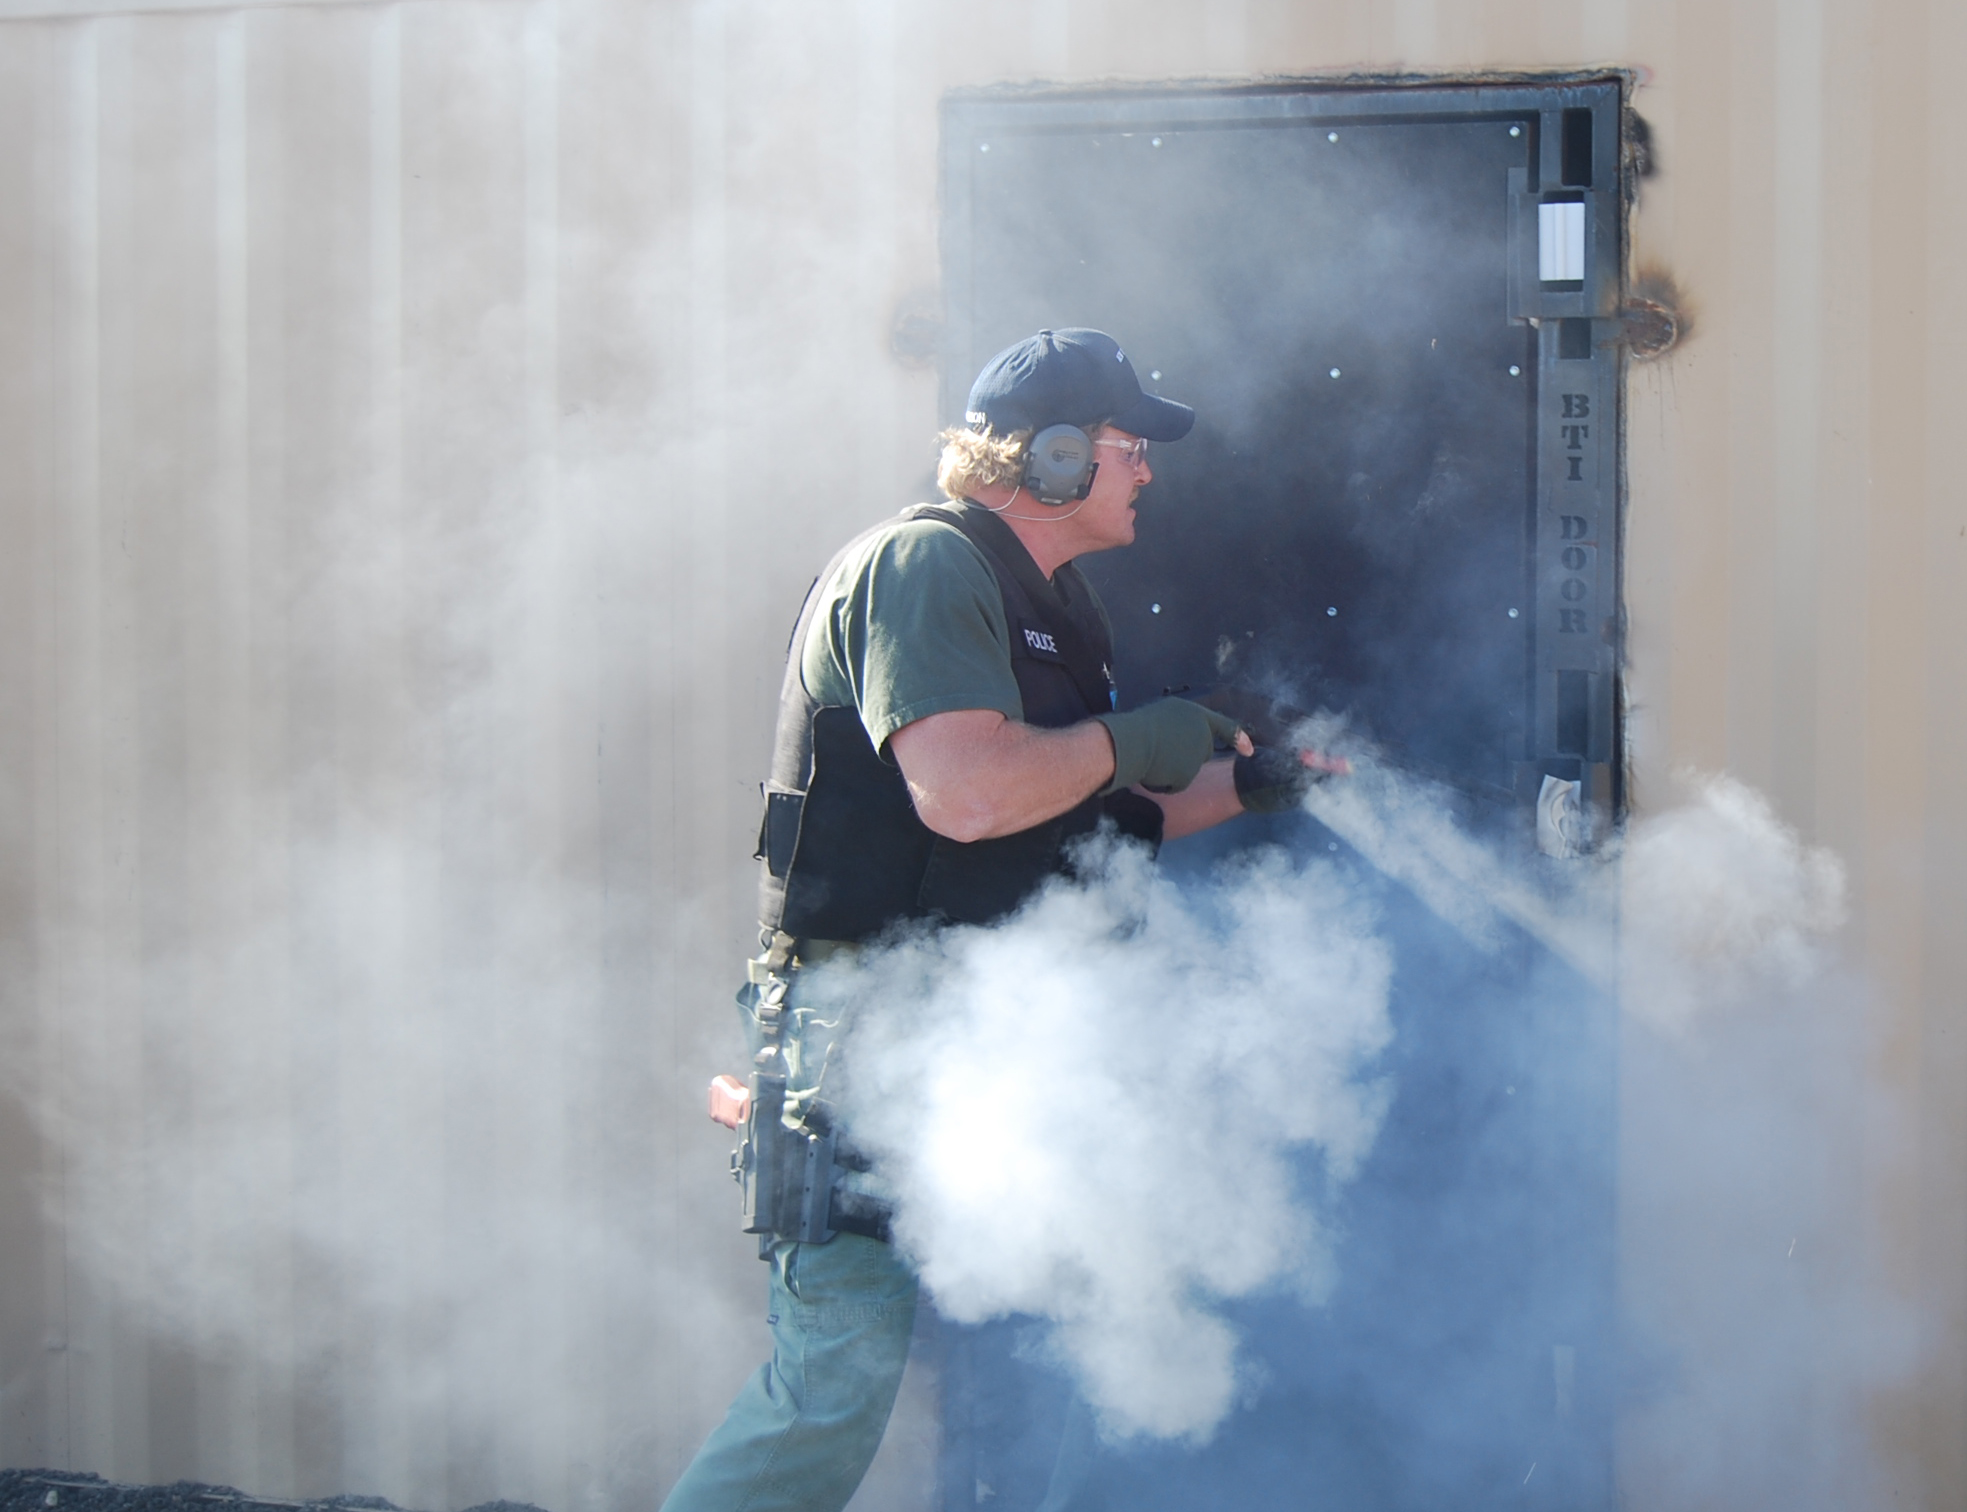 Less Lethal training